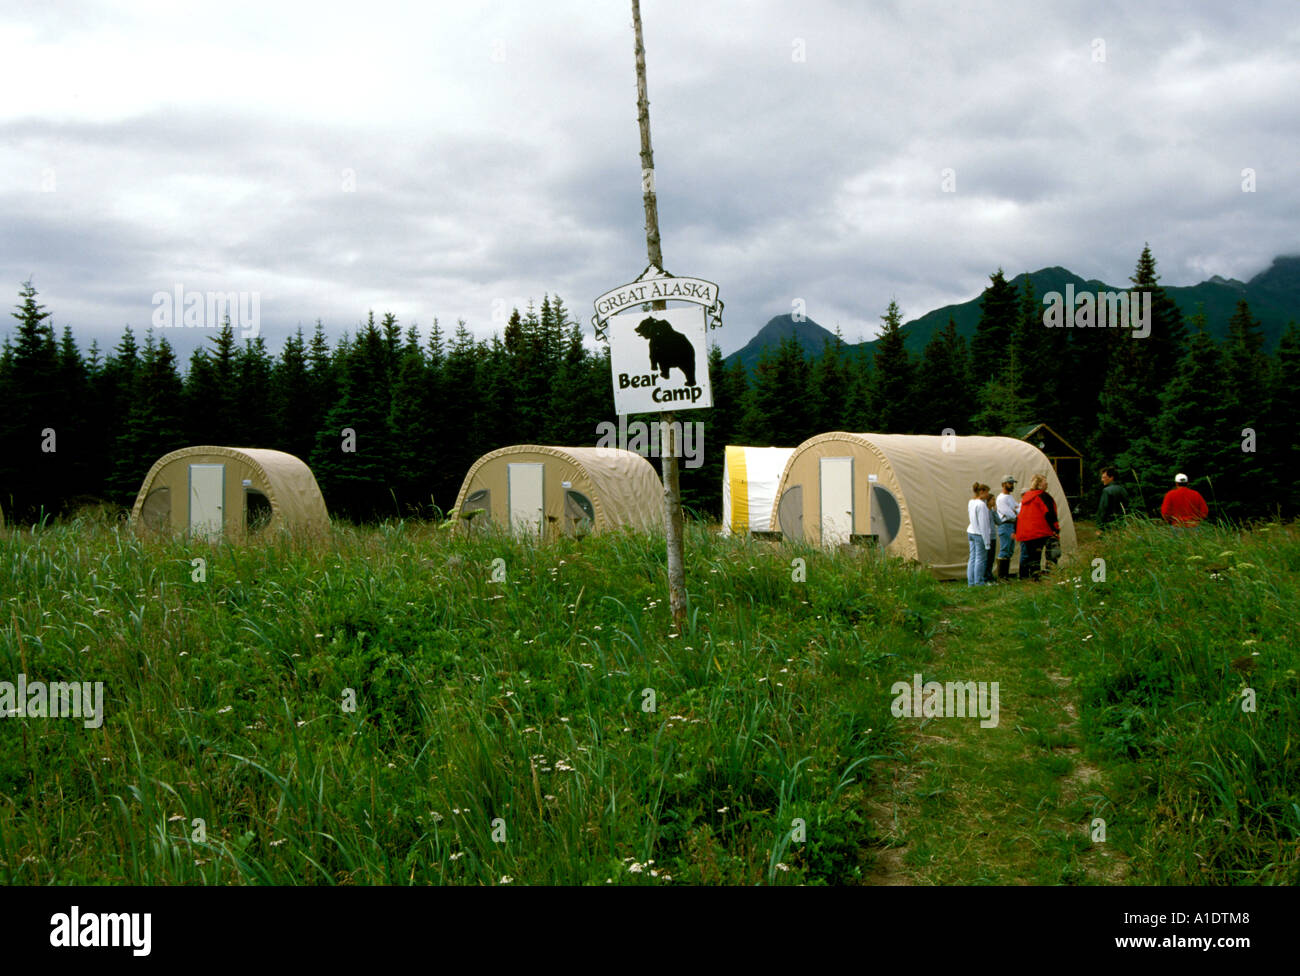 Alaska Lake Clark National Park and Preserve Bear Camp for grizzly bear viewing - Stock Image